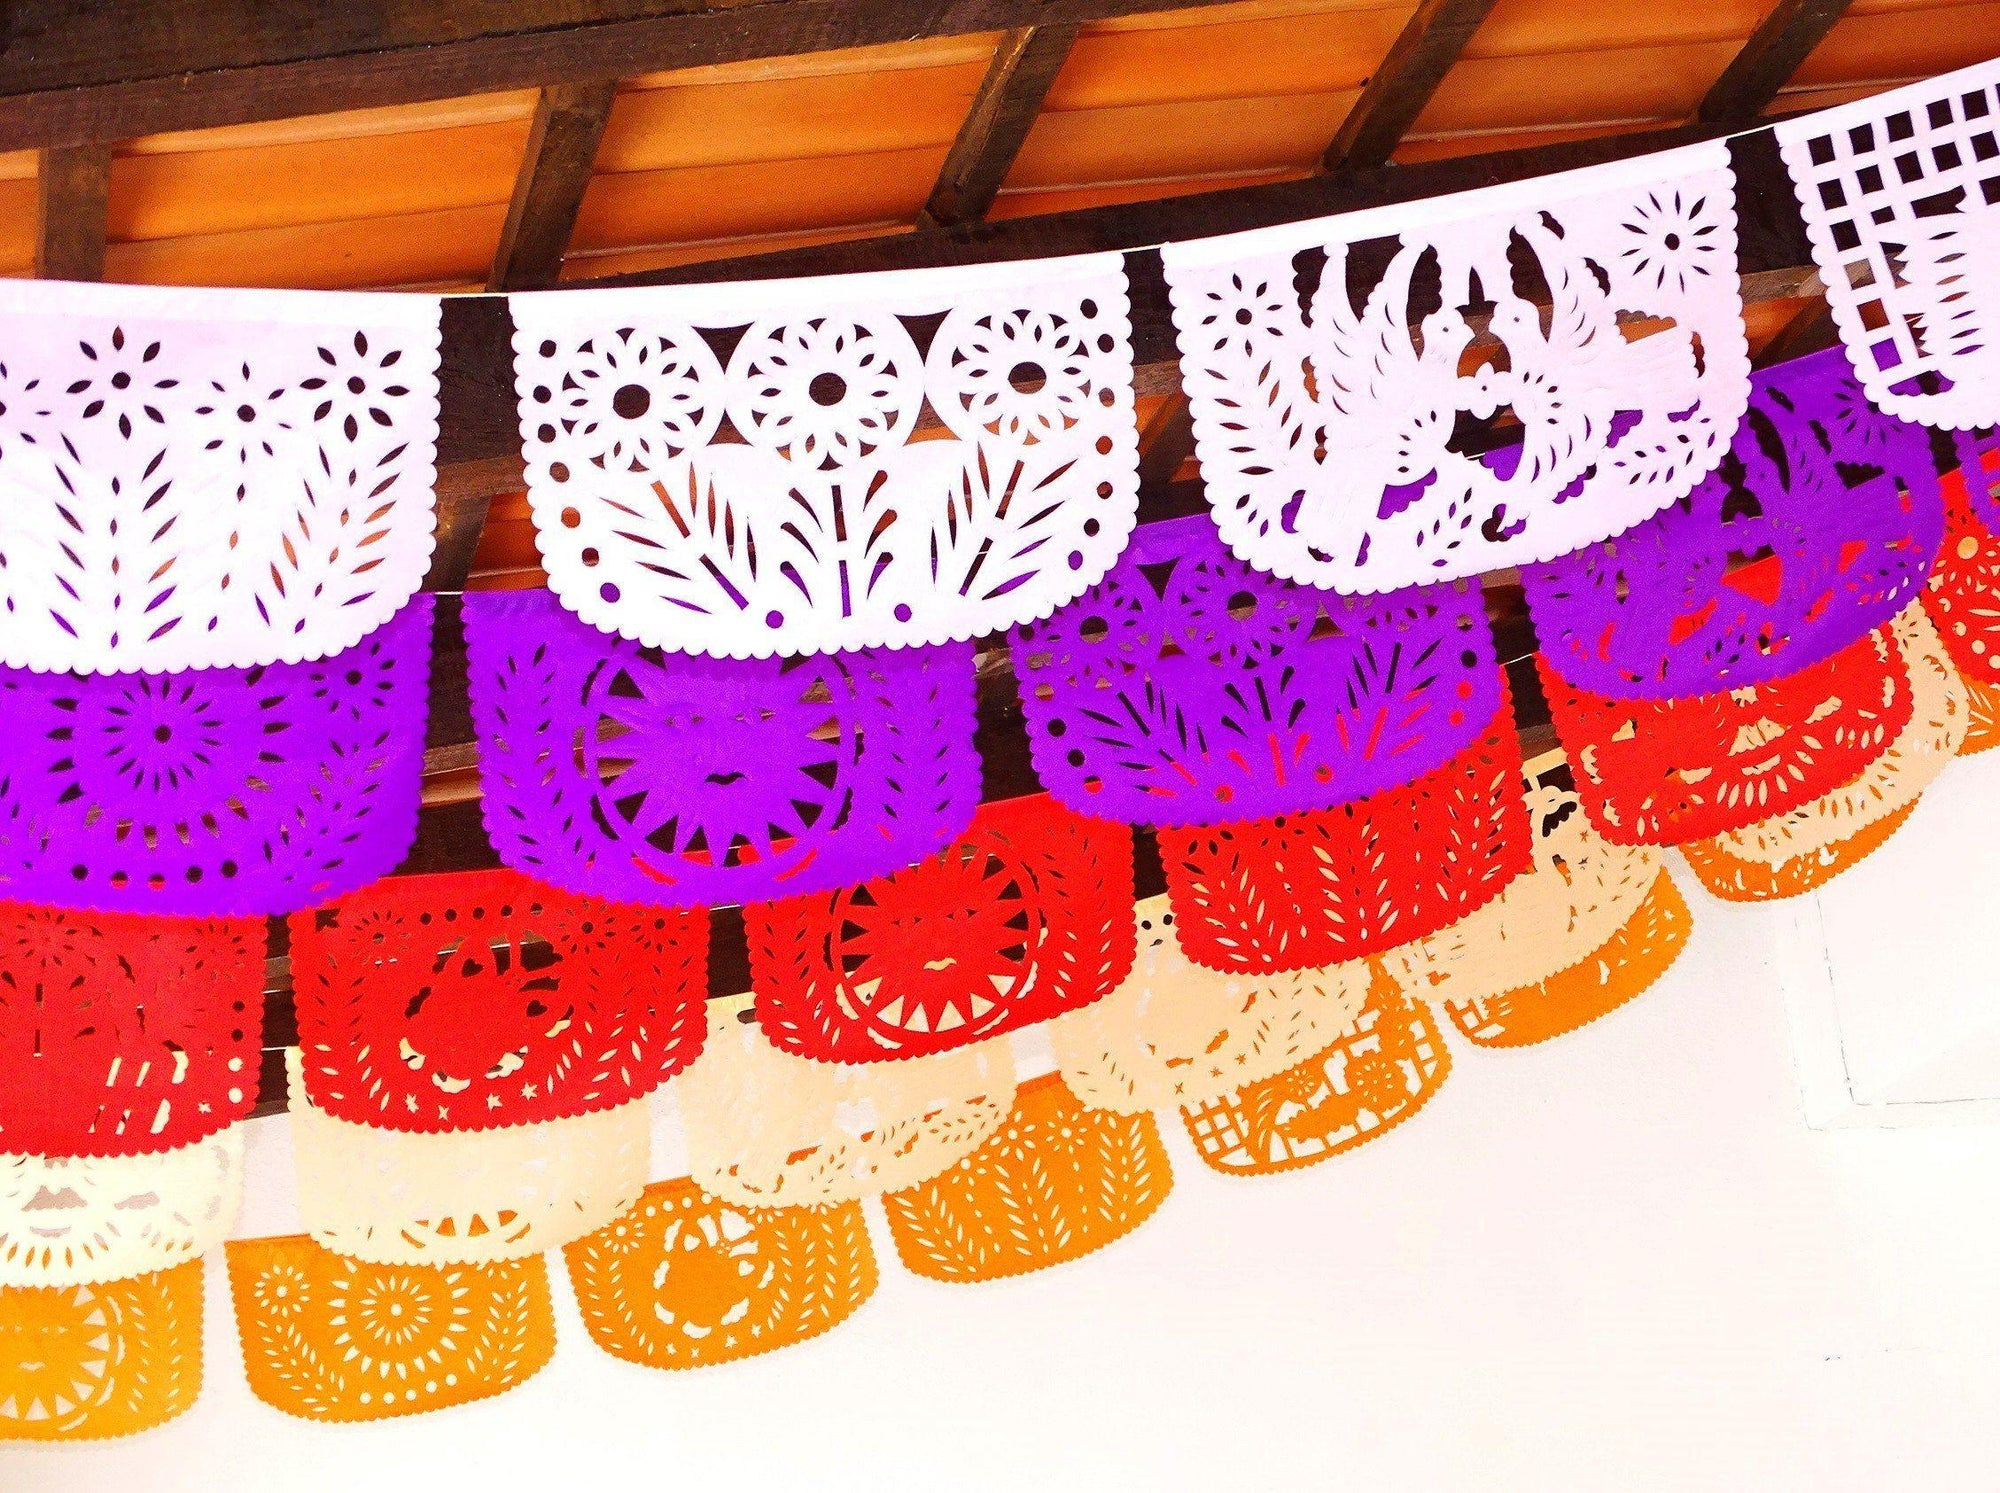 Fiesta Bridal Shower Banner 5 Pack Banners Papel Picado Decor Fiesta Decorations Garland Mexican Party Supplies 60 Feet Long Fiesta Party Banner